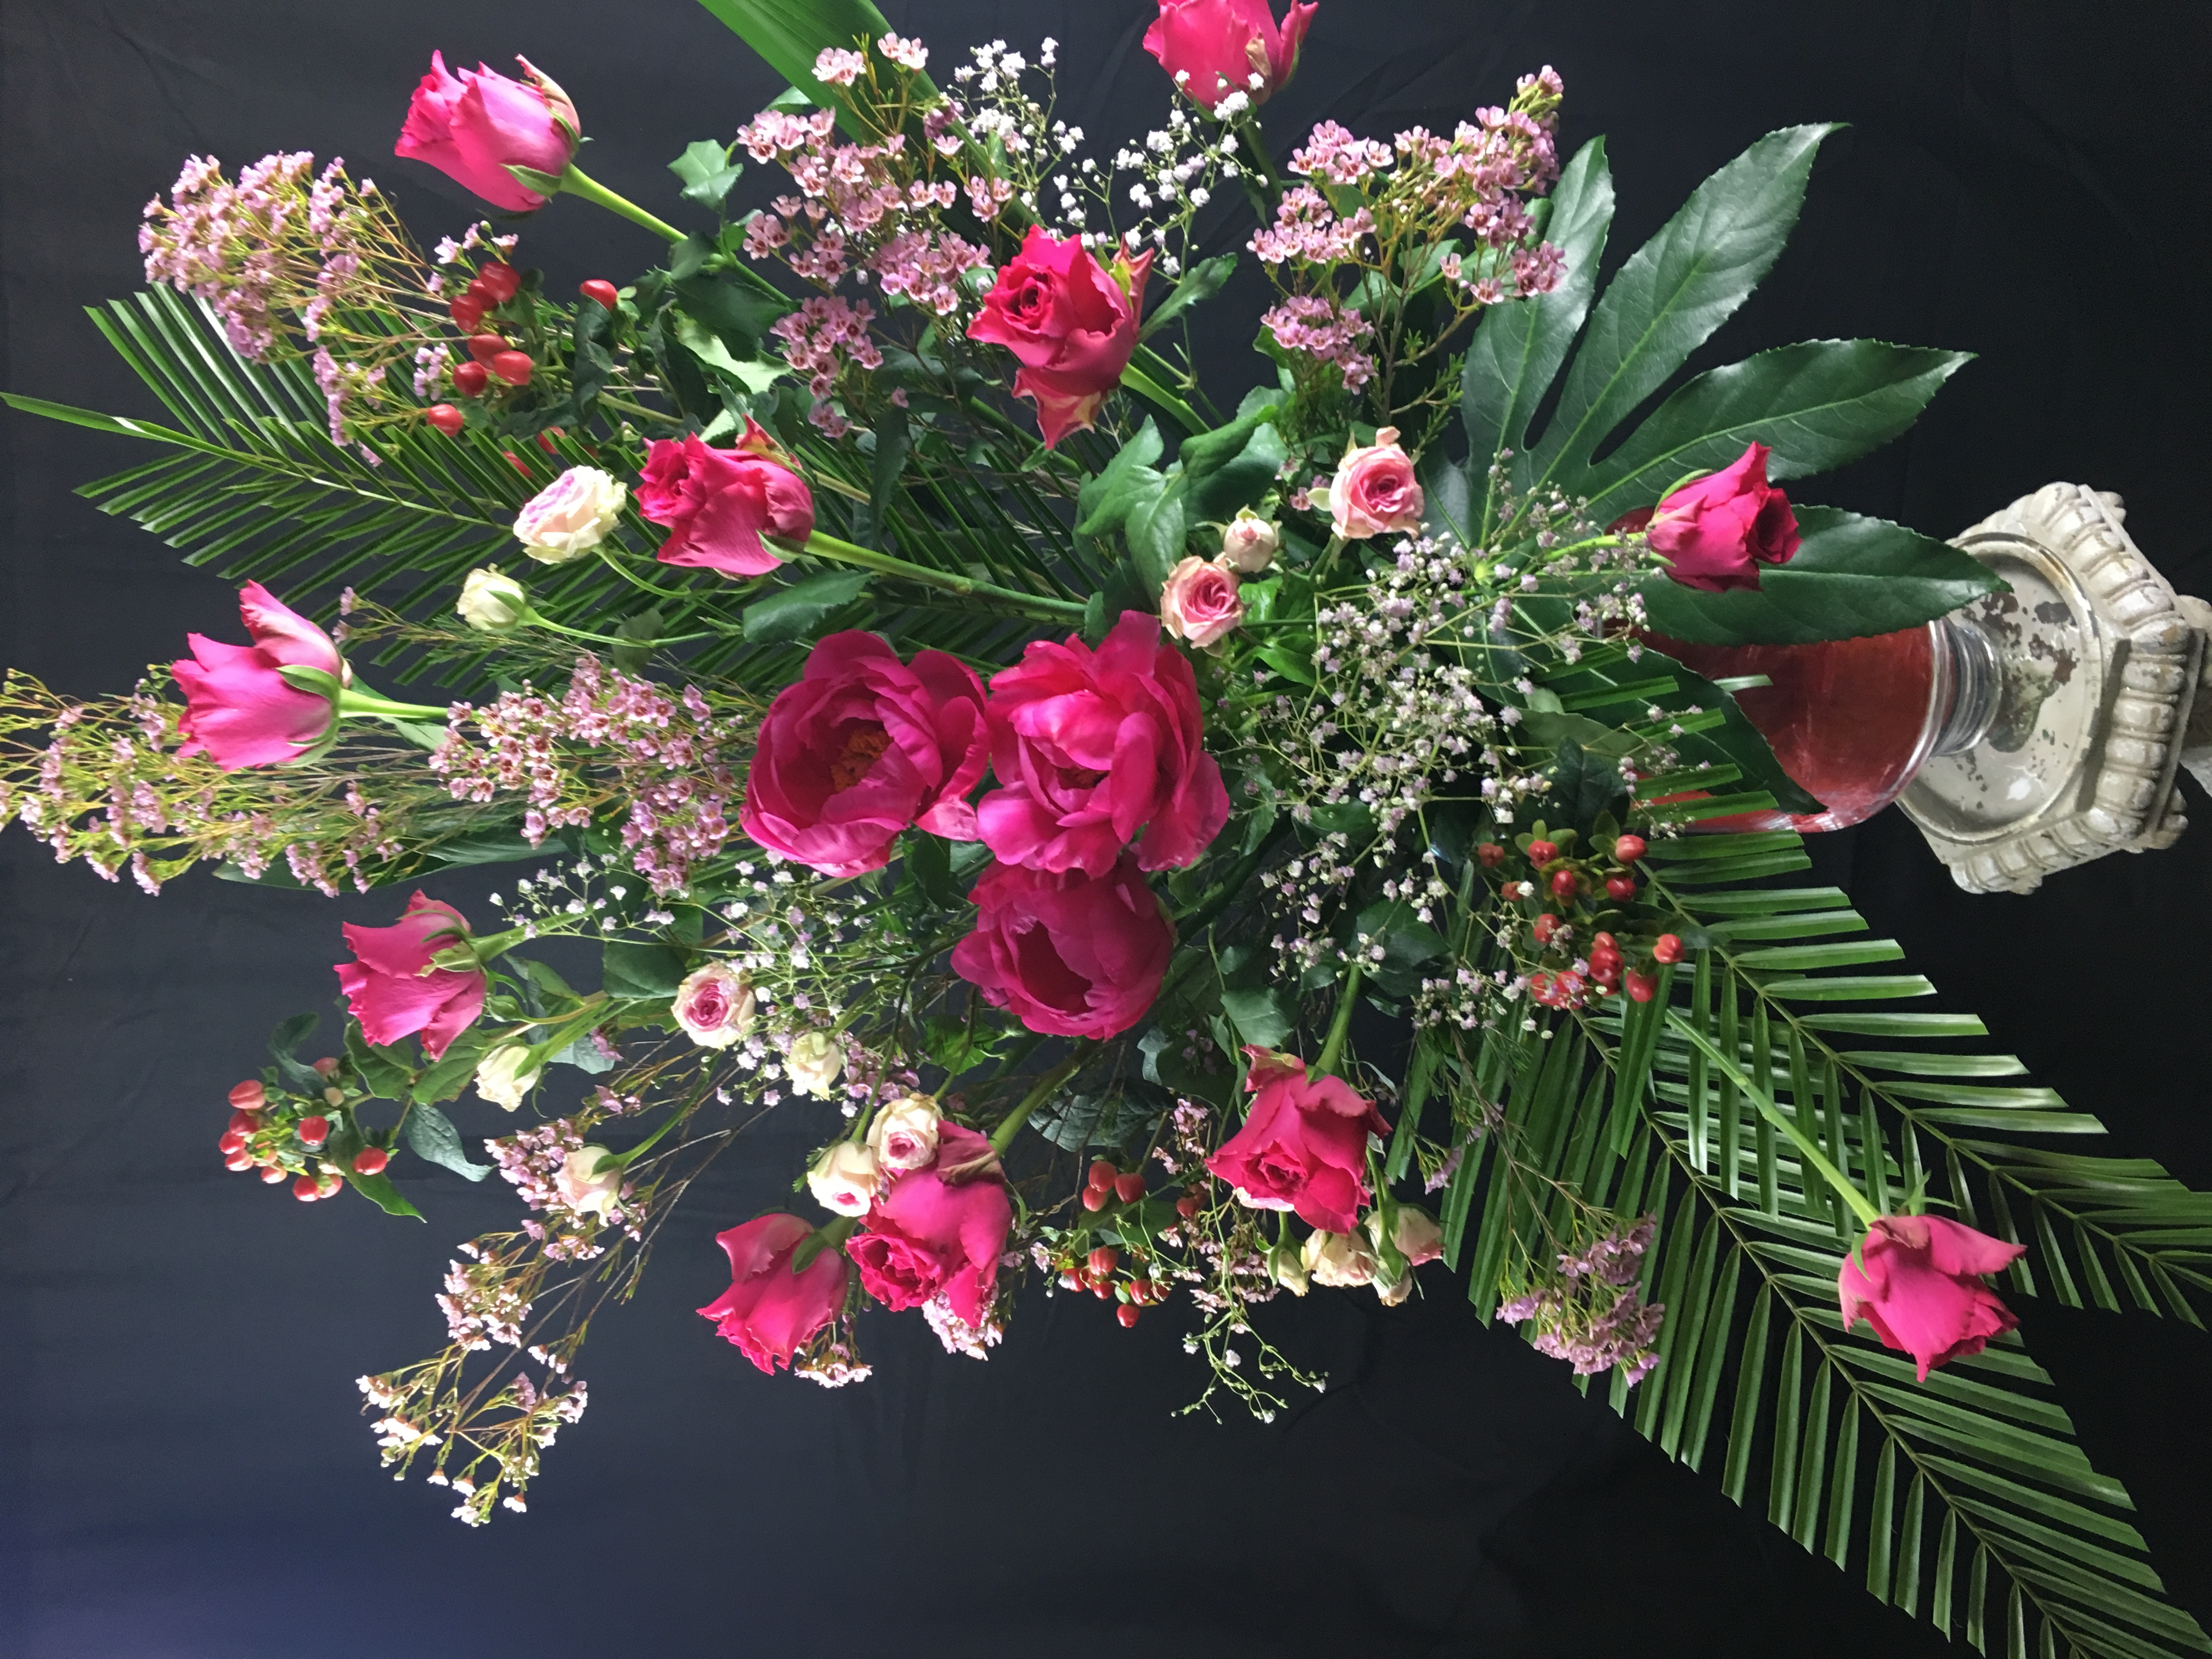 Floral Design undefined classes in London